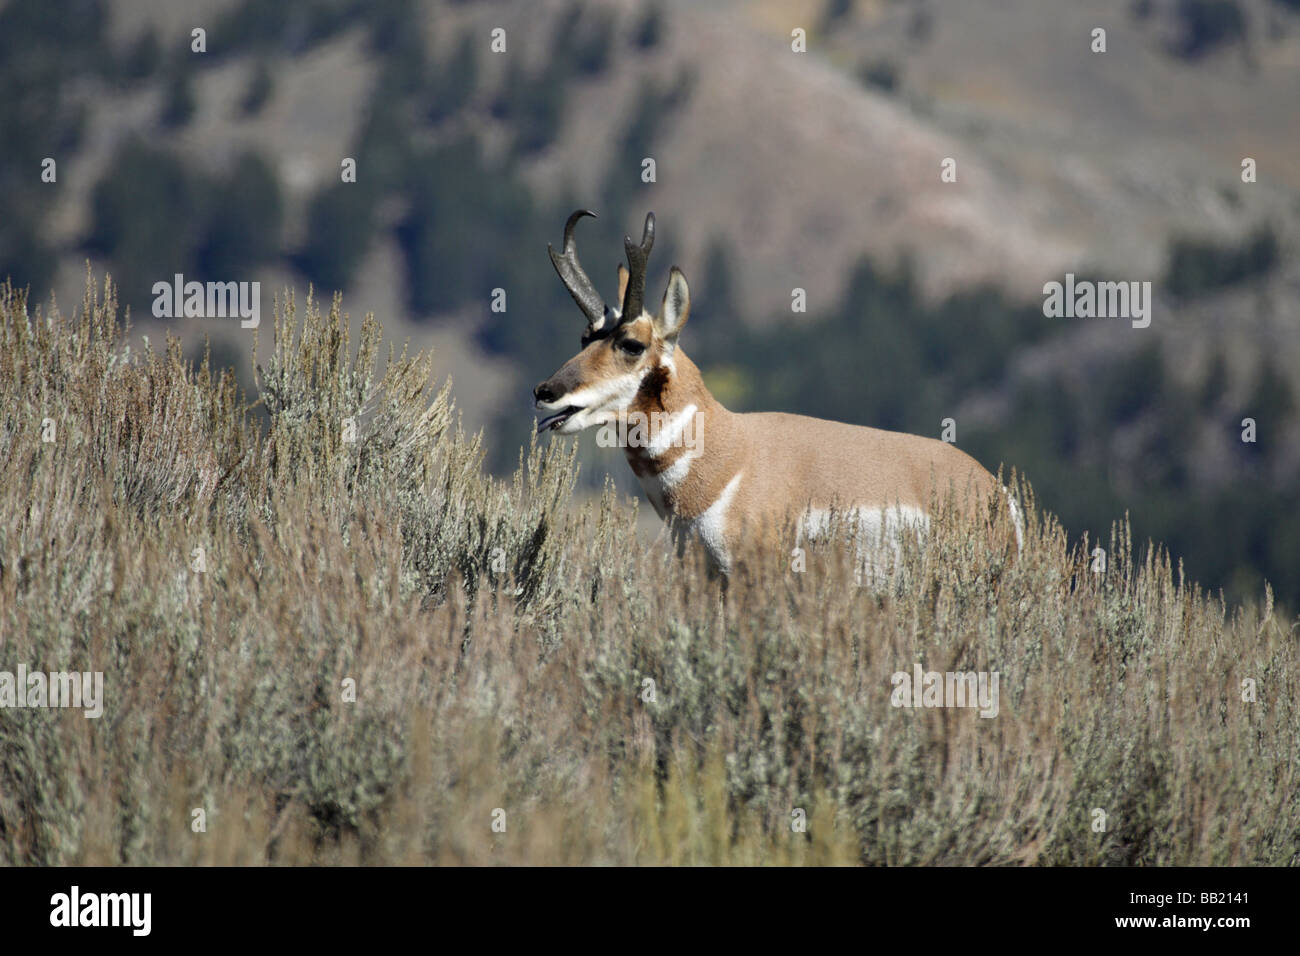 Pronghorn Antelope Antilocapra americana male standing over a female lying in the sage brush - Stock Image